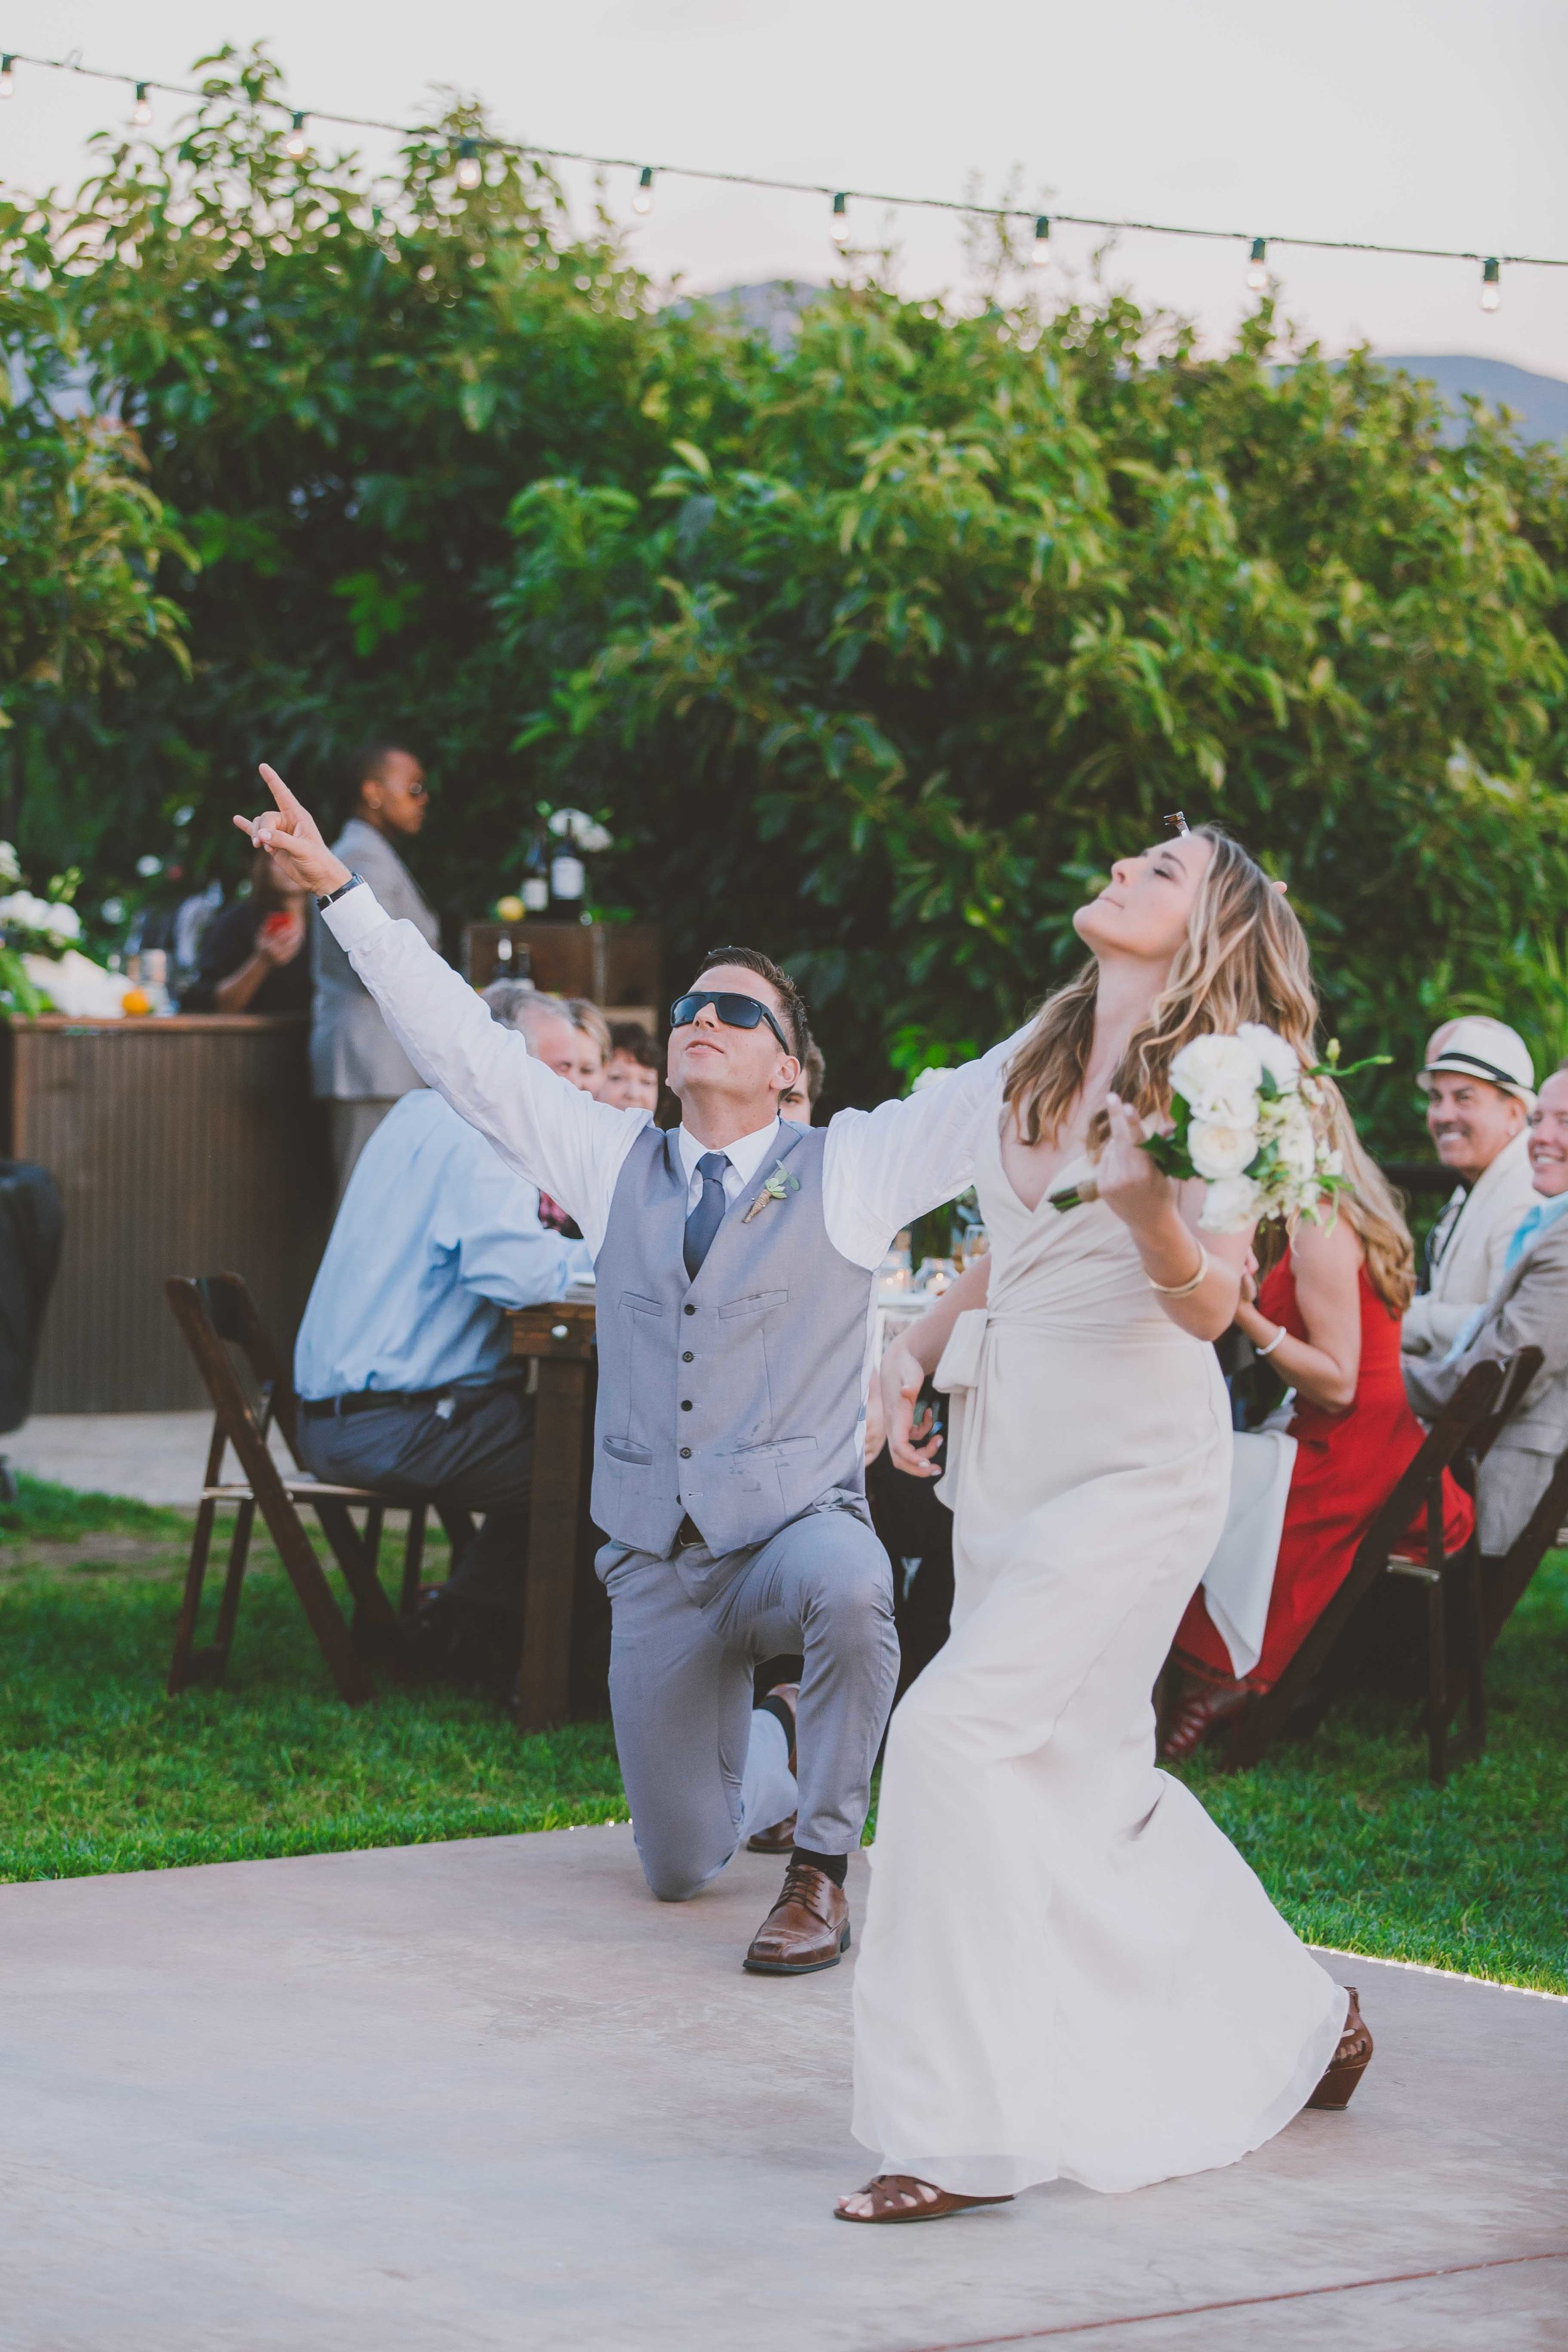 2015-Perkinson-Wedding-GerrysRanch-0202-web.jpg